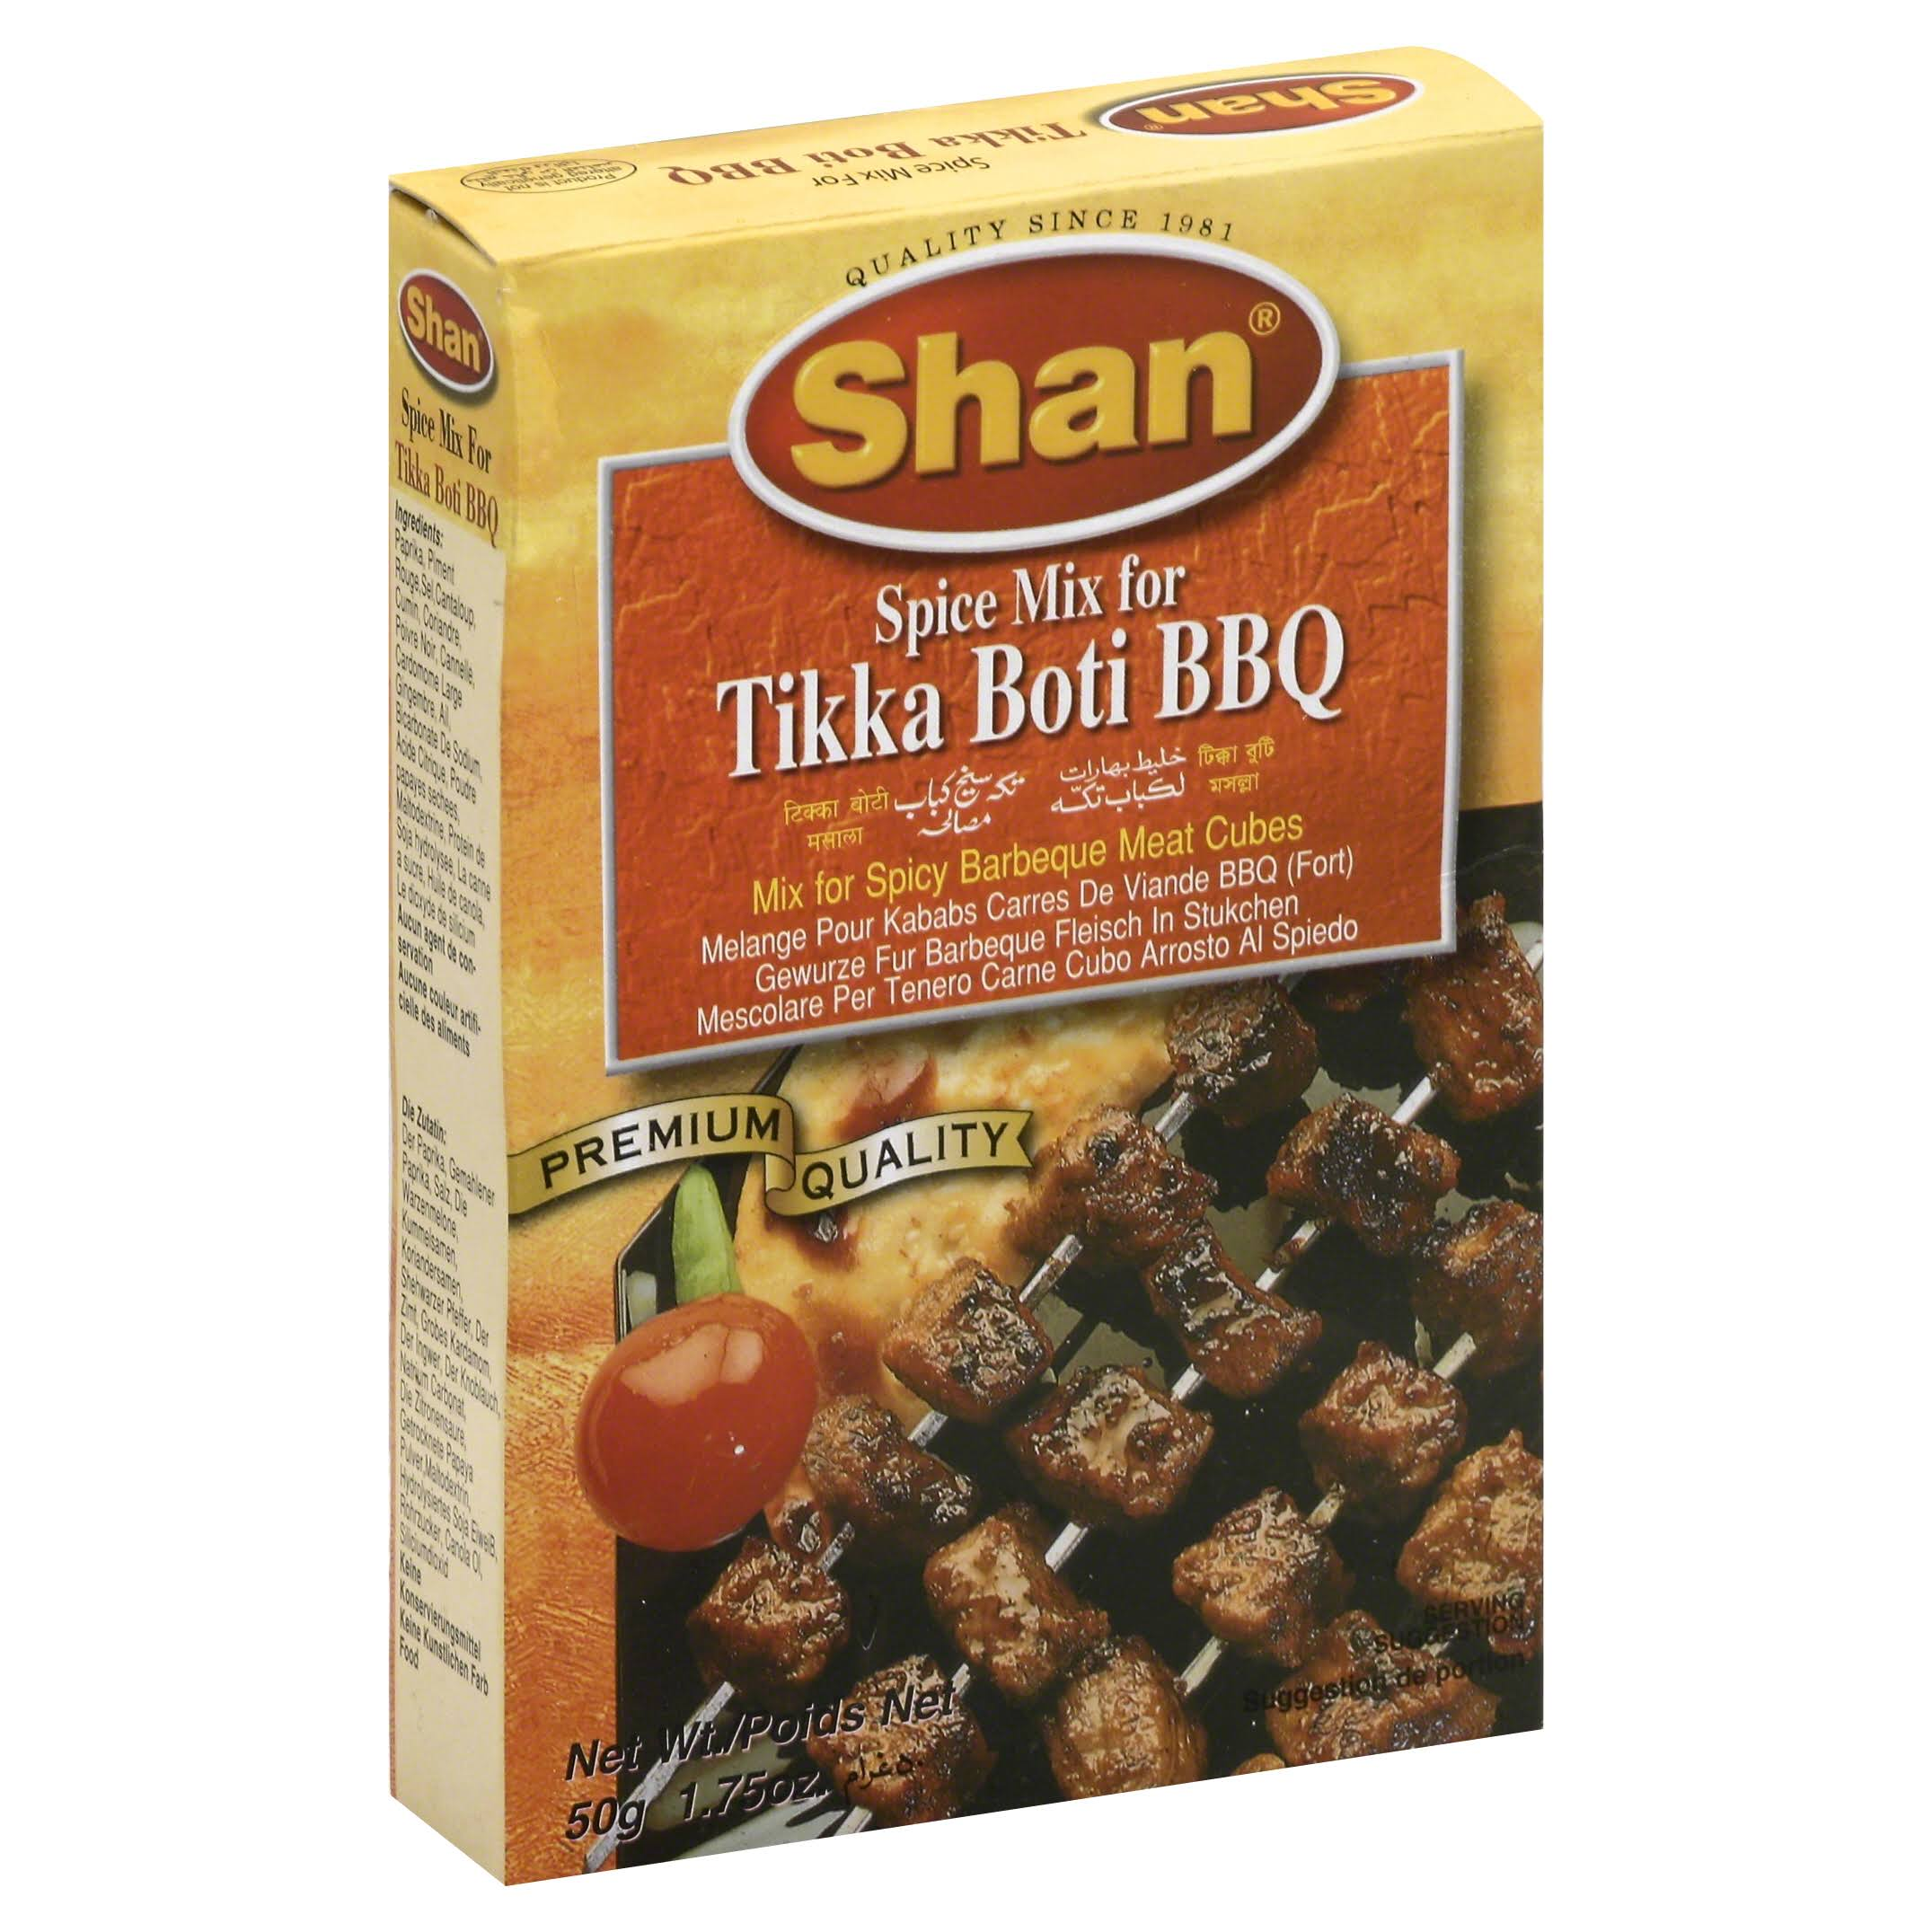 Shan Spice Mix, for Tikka Boti BBQ - 1.75 oz